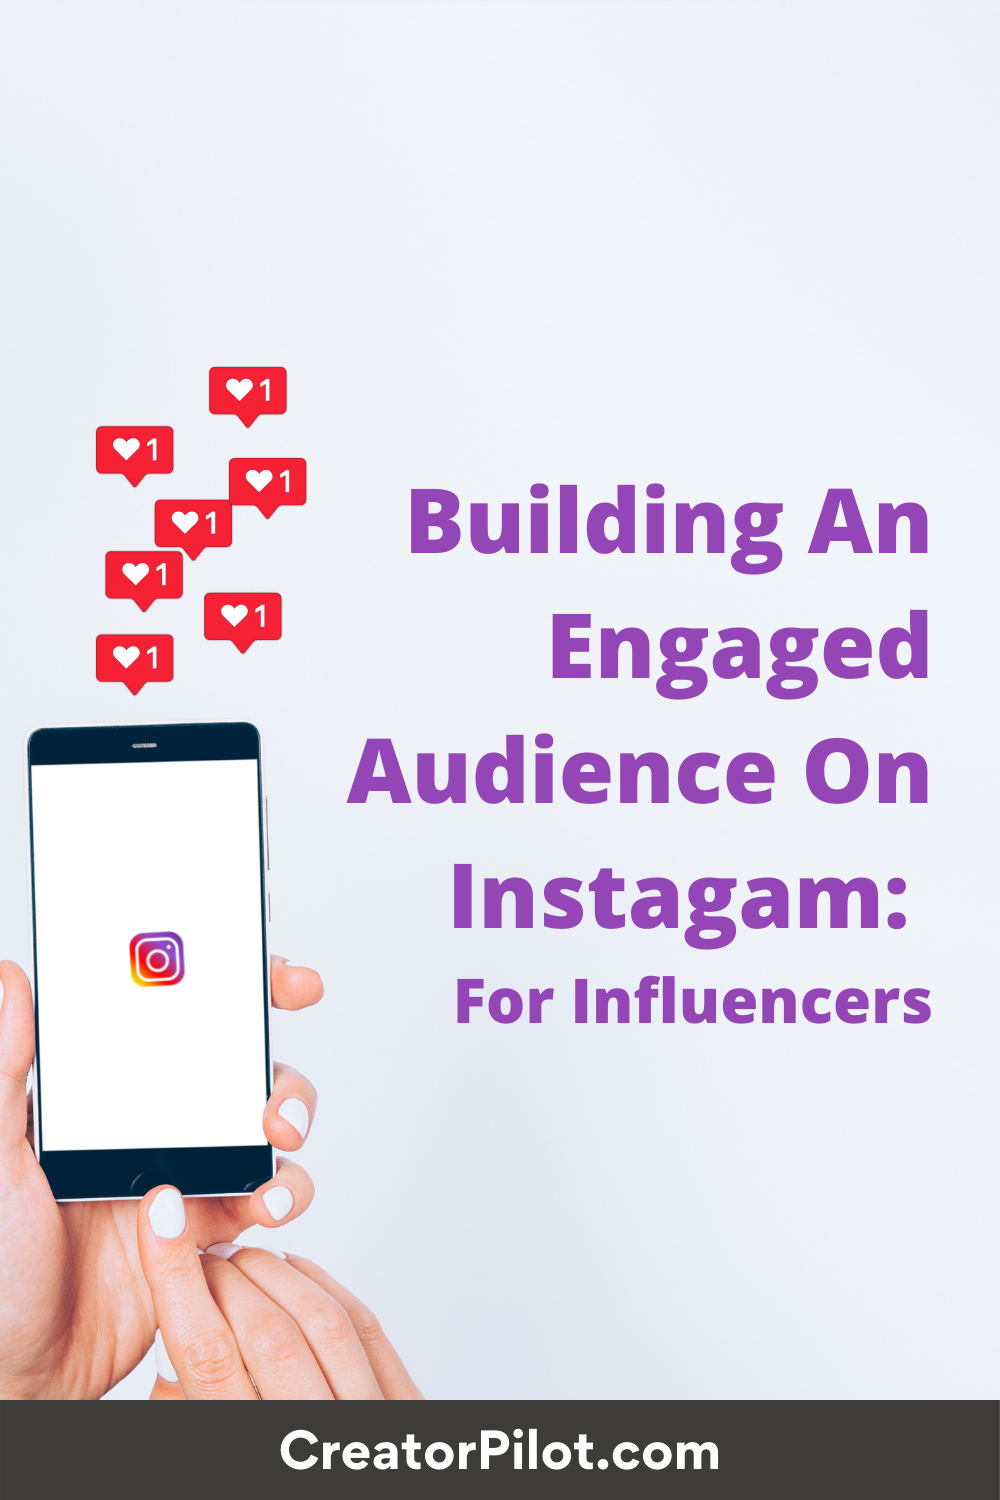 building an engaged audience on Instagram